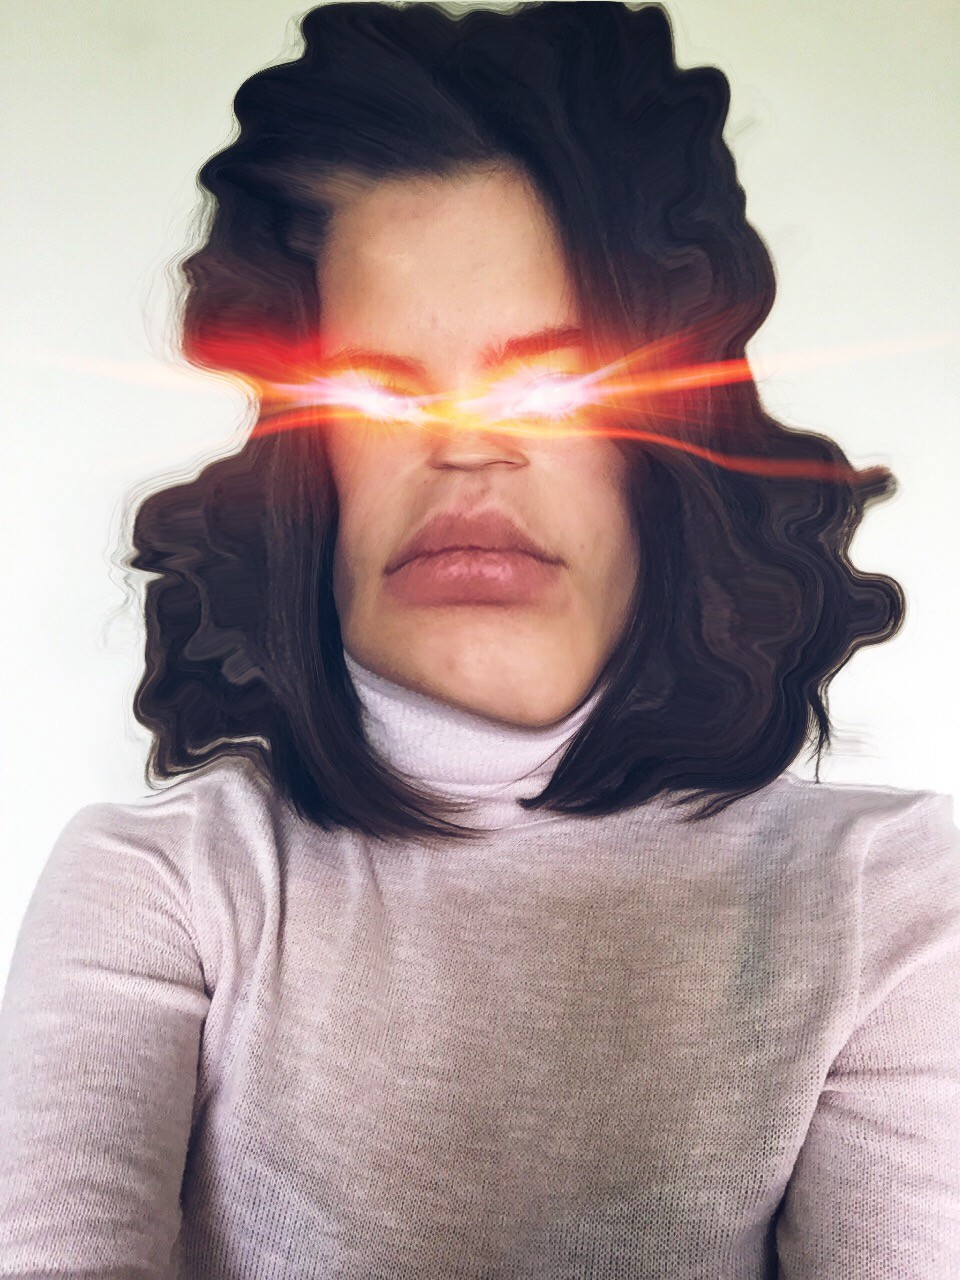 How to Use PicsArt Photo Editor to Make a Laser Eye Meme ...